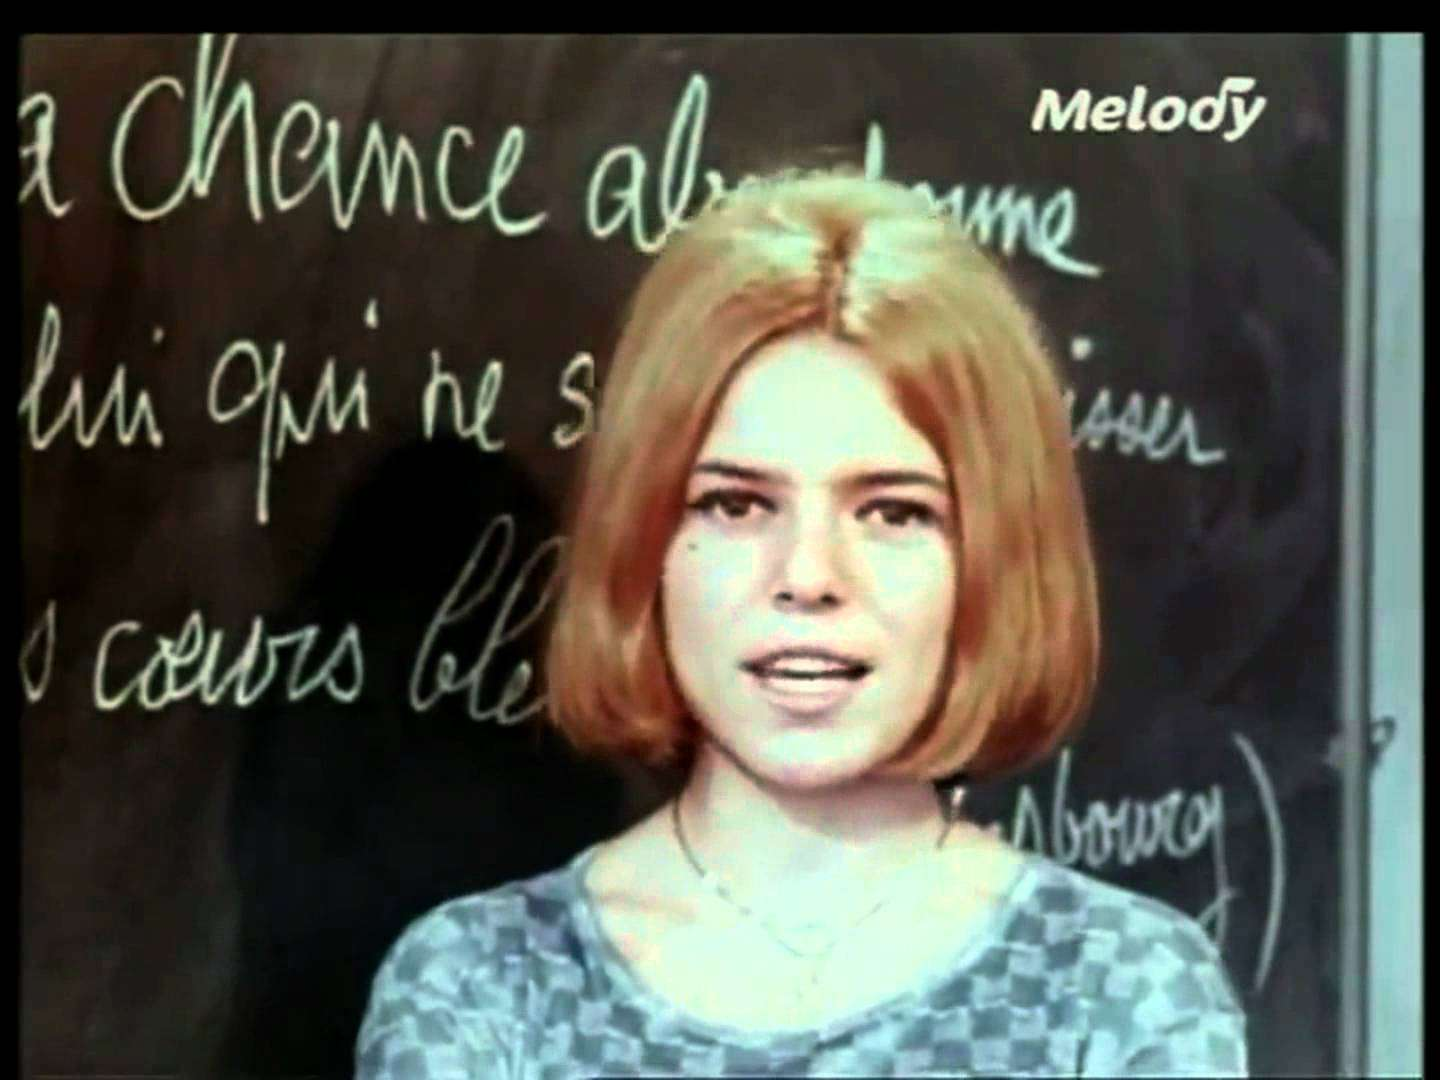 France Gall - Laisse tomber les filles 1964 HD (Tele Melody) - YouTube